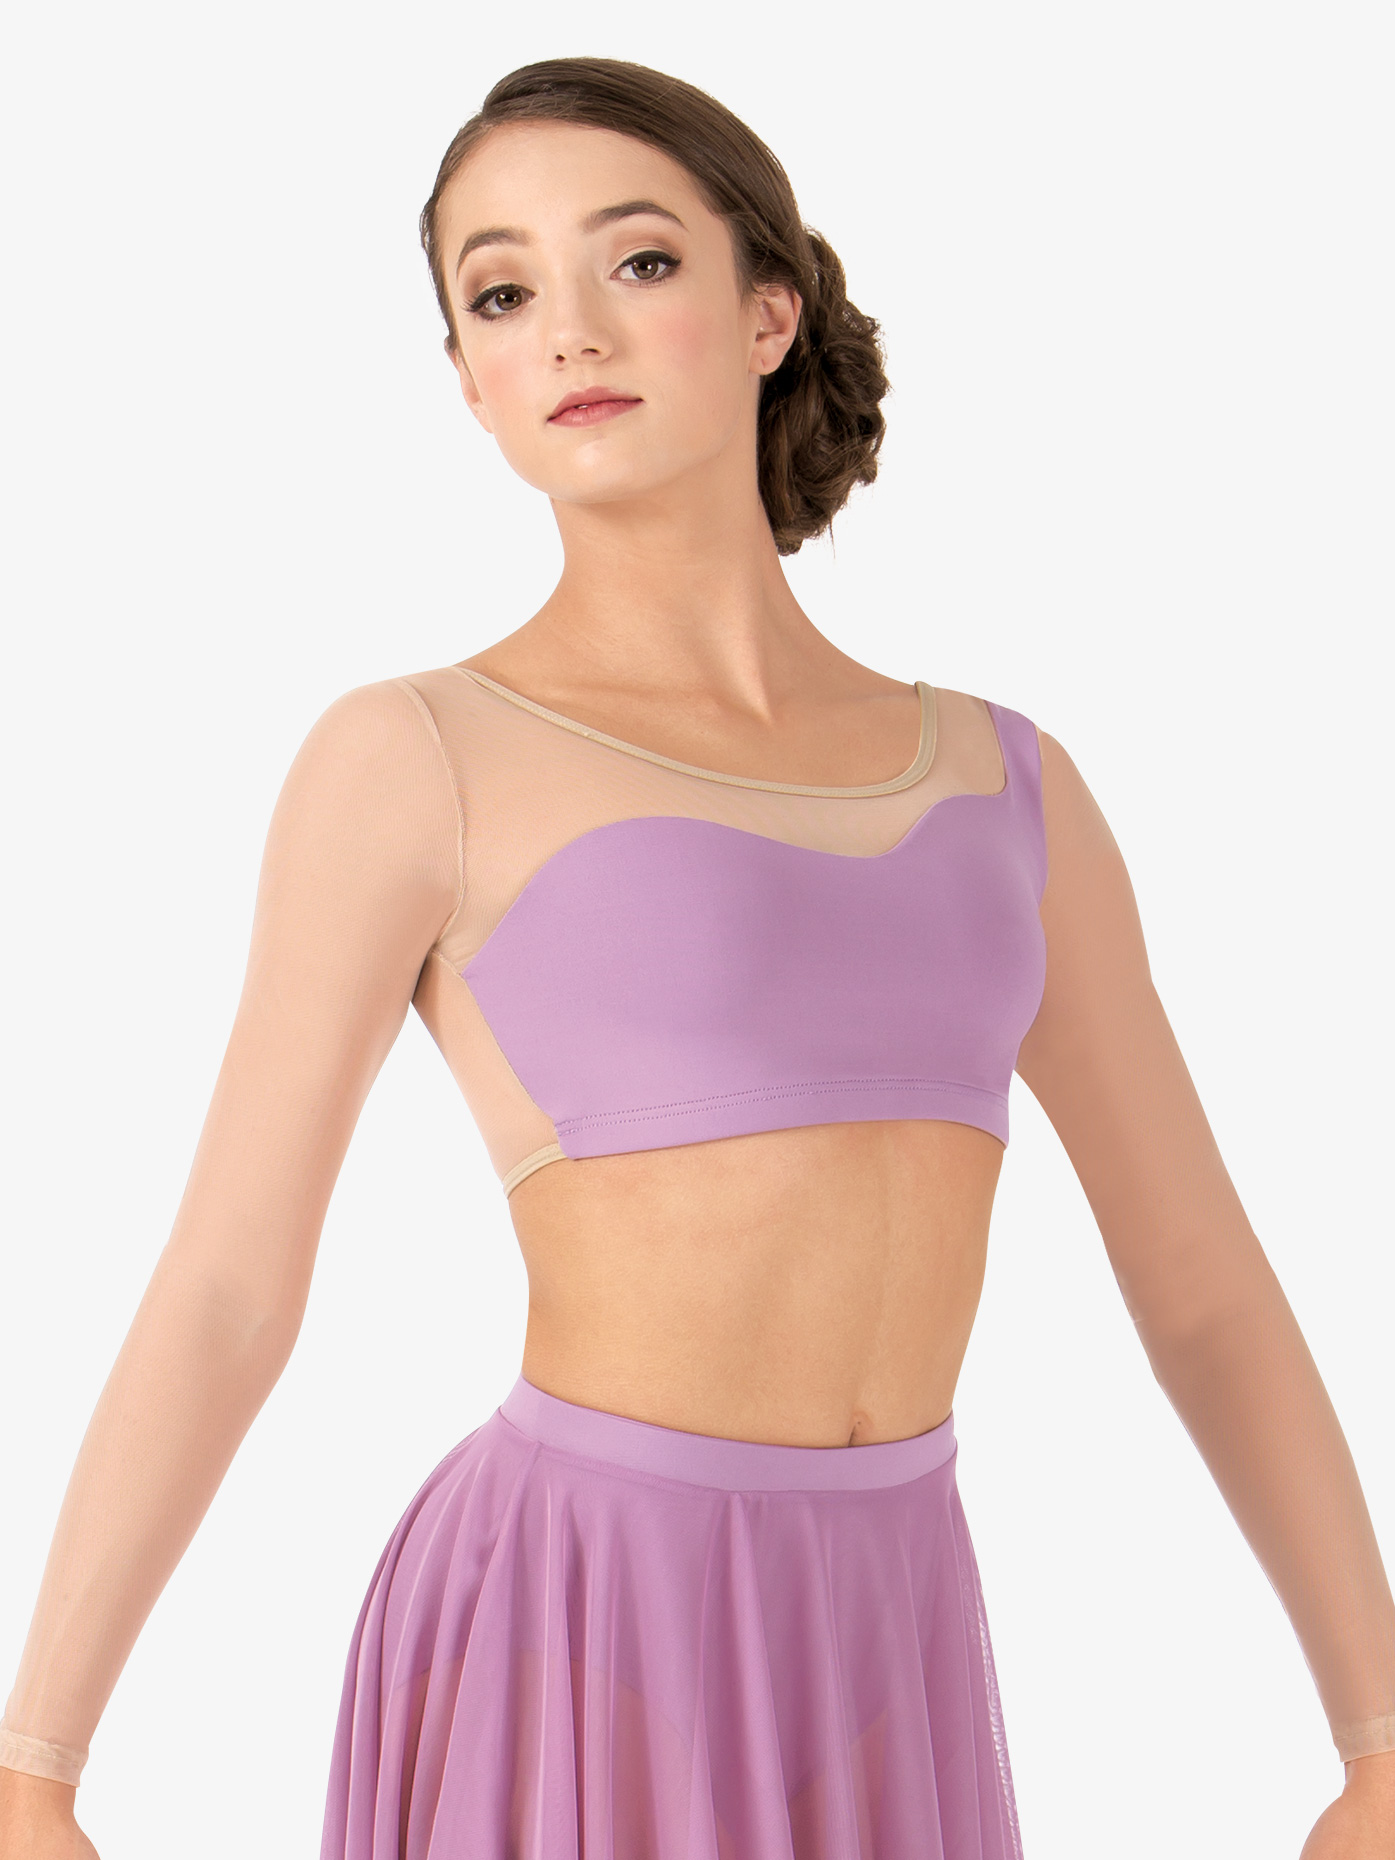 Body Wrappers Adult Asymmetrical Long Sleeve Dance Crop Top BWP9029